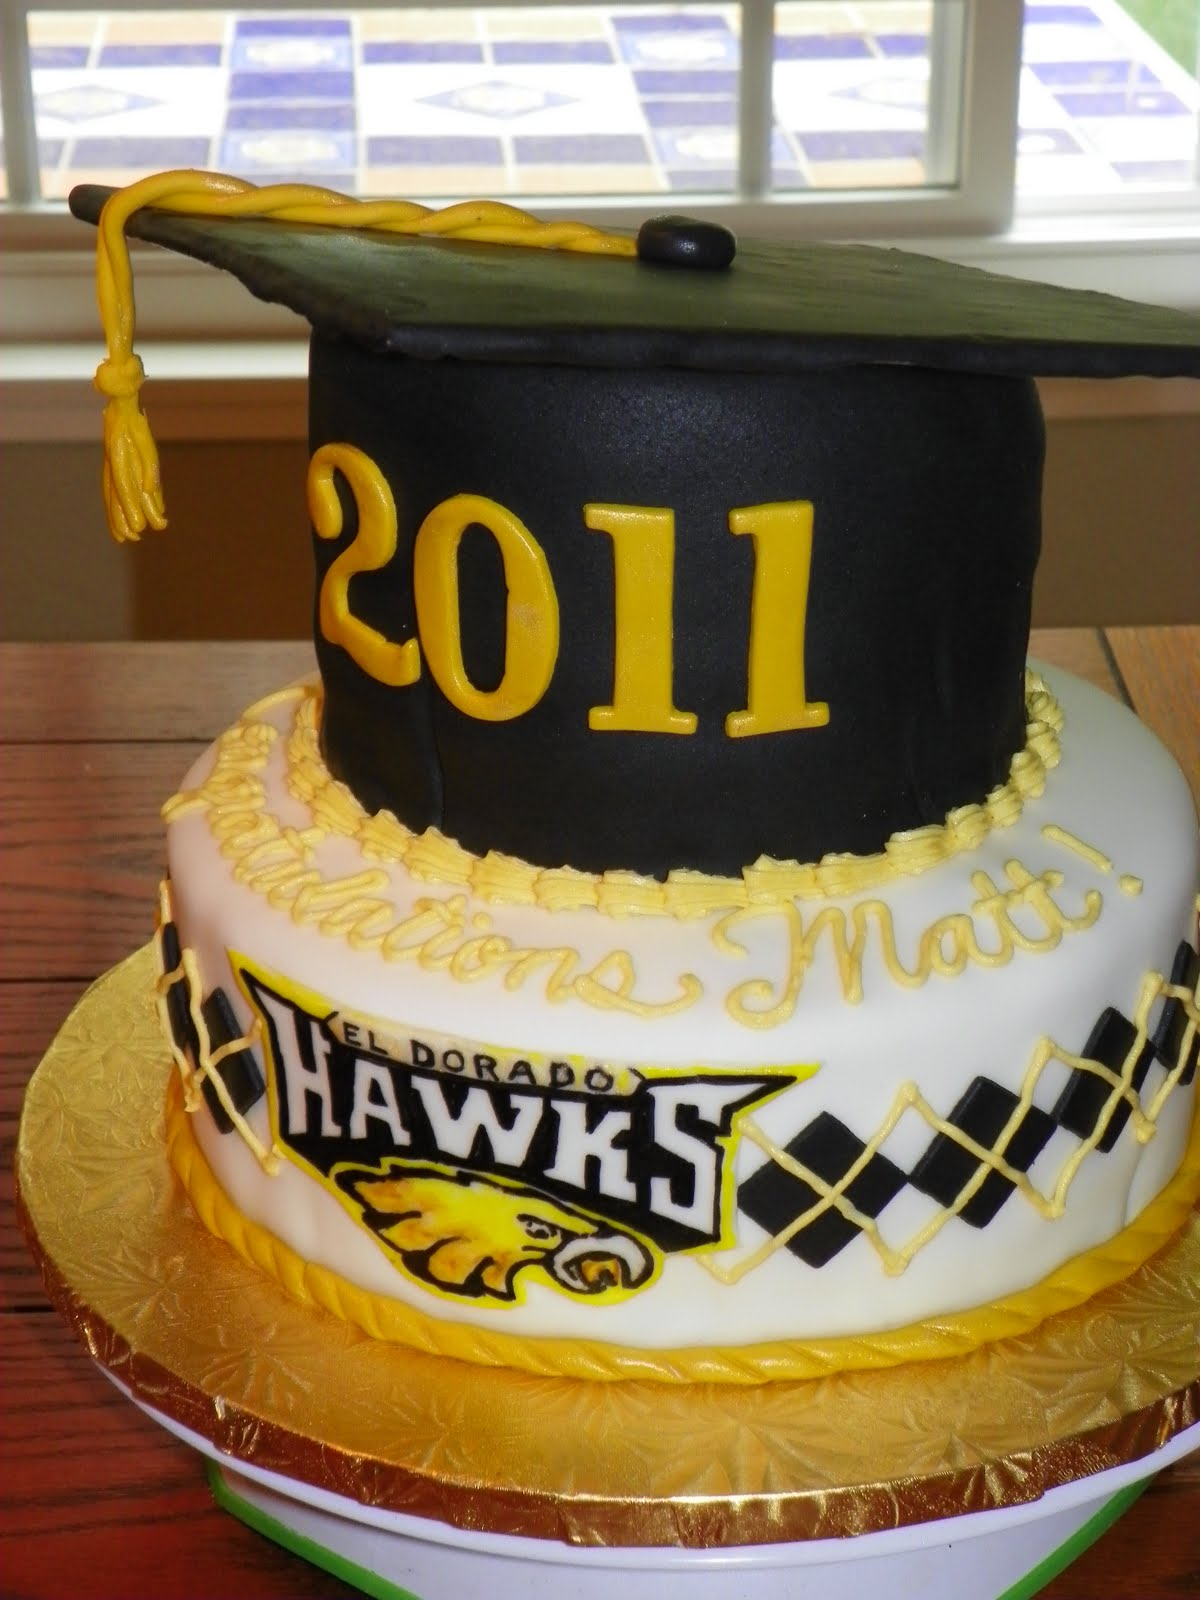 Decorated Cakes For Graduation